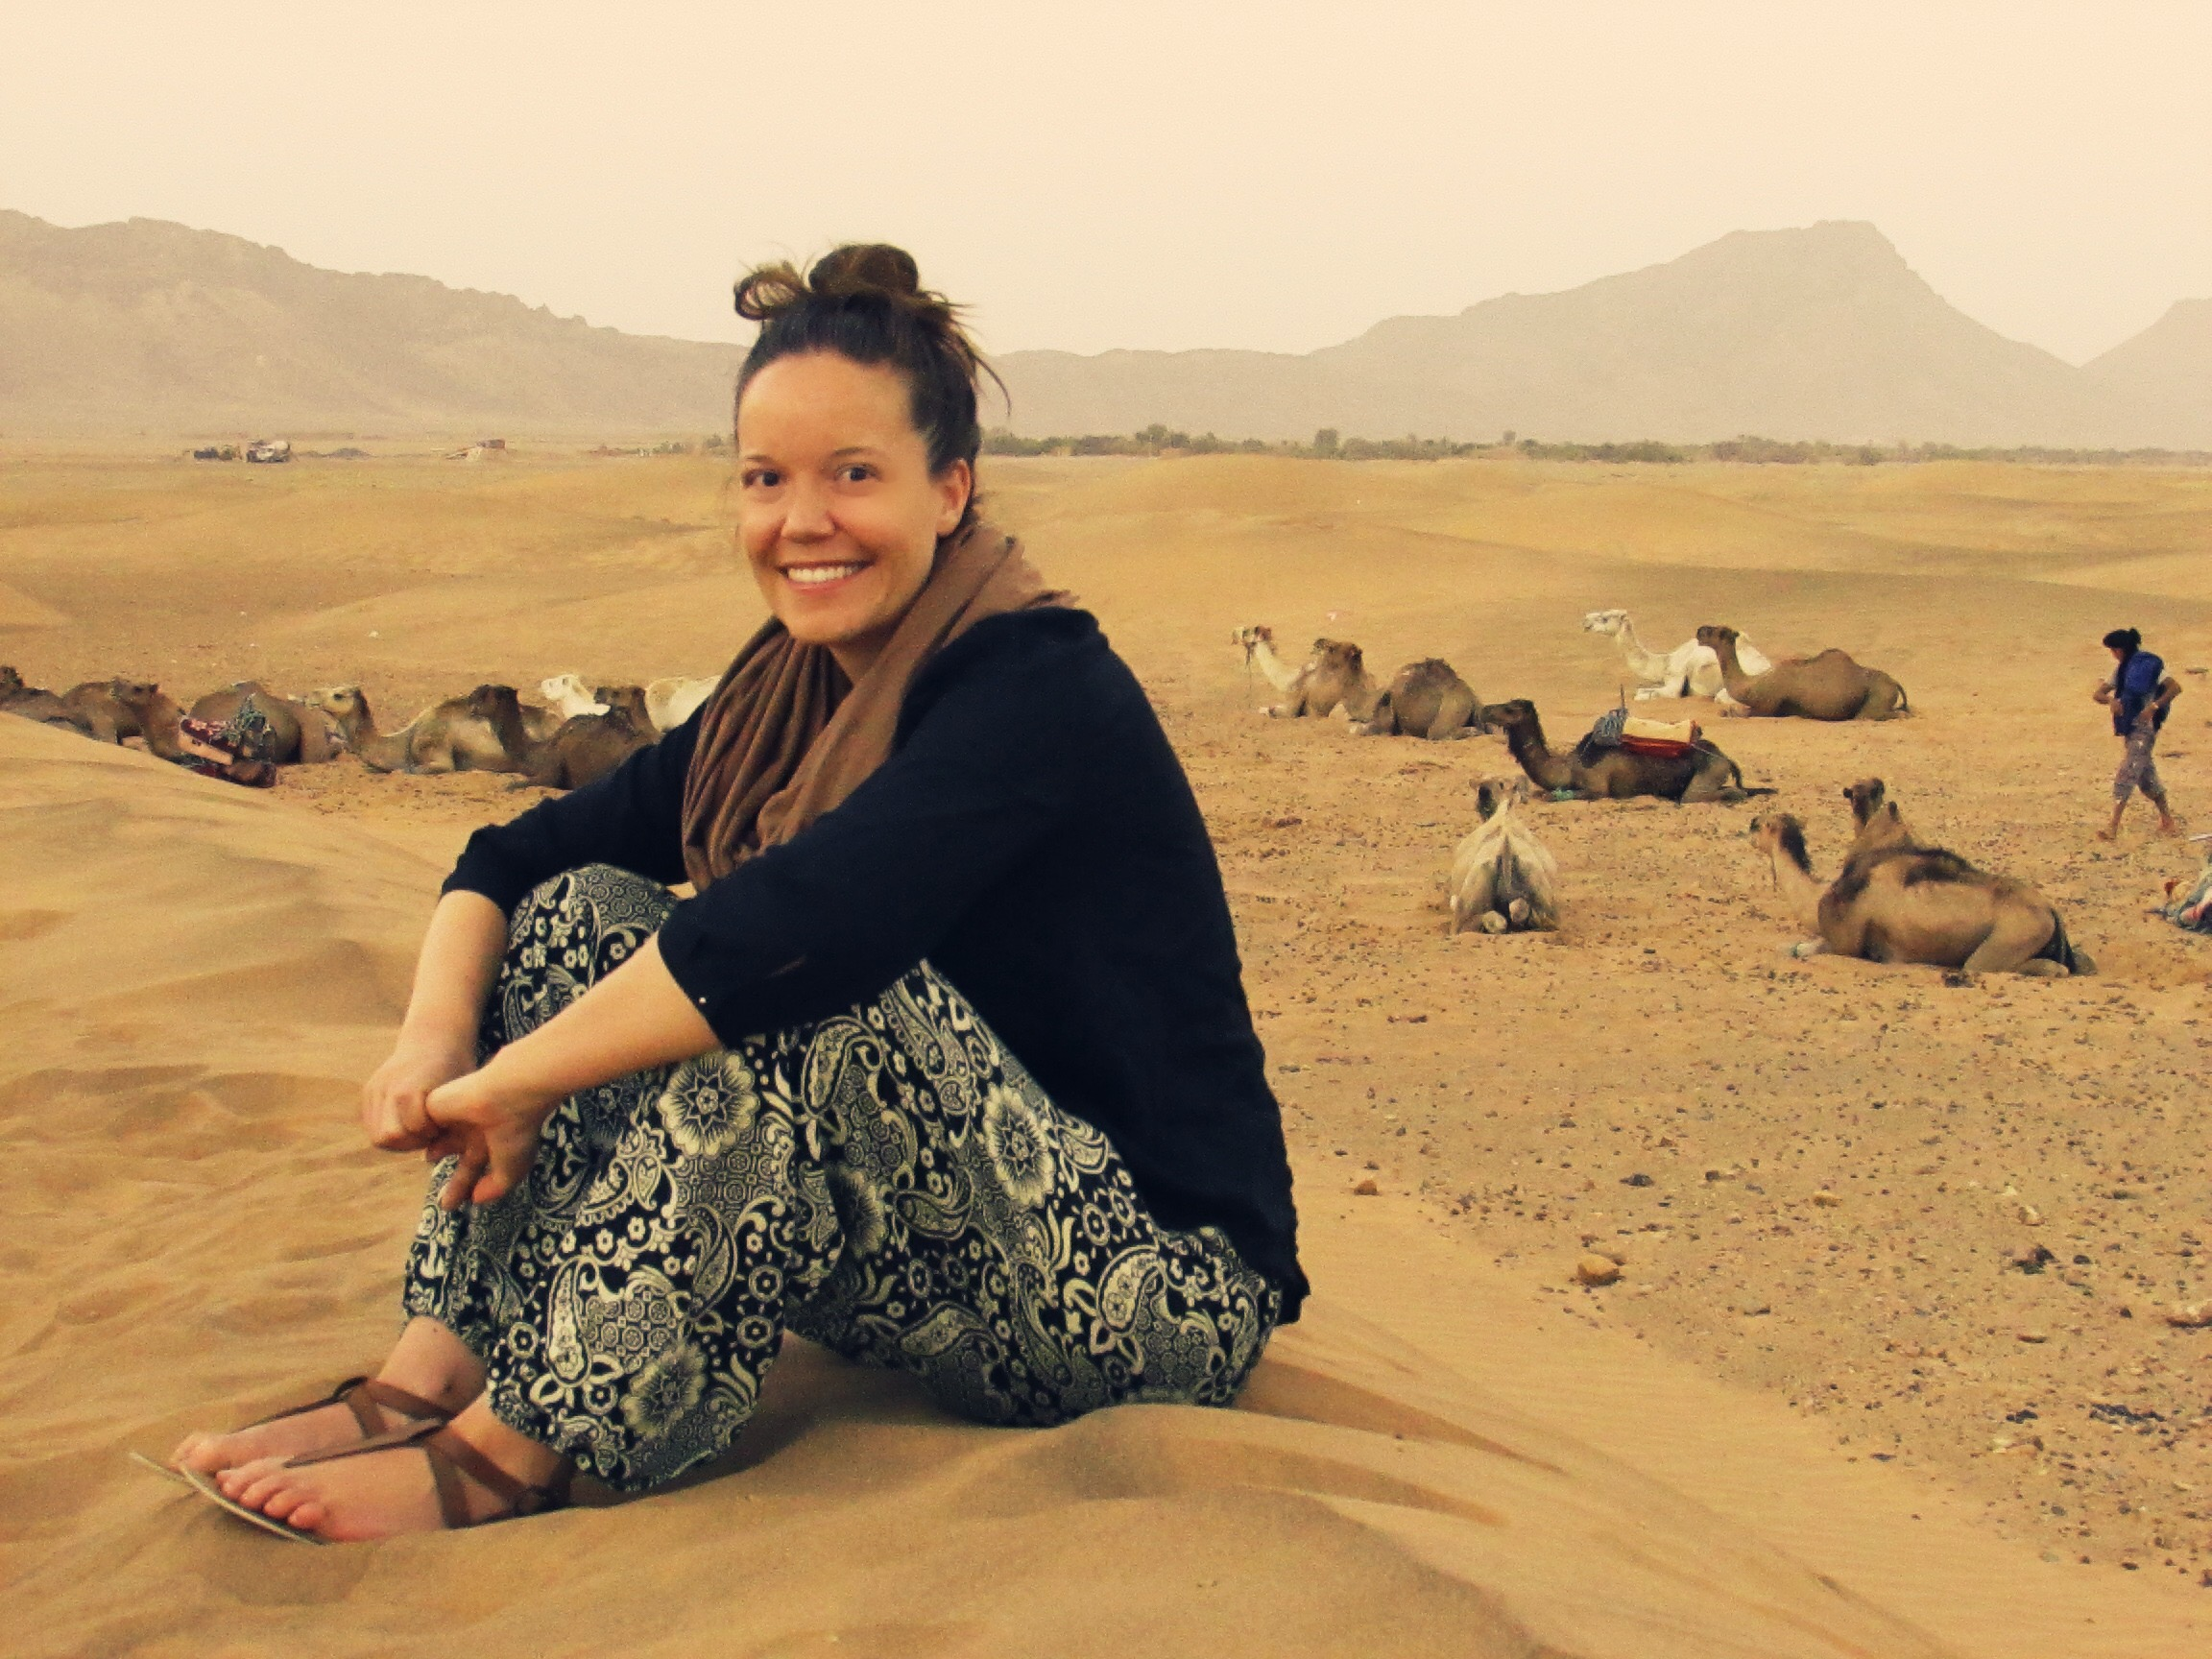 You'll easily meet travel buddies when sharing a tent while on a Sahara Desert tour in Morocco!